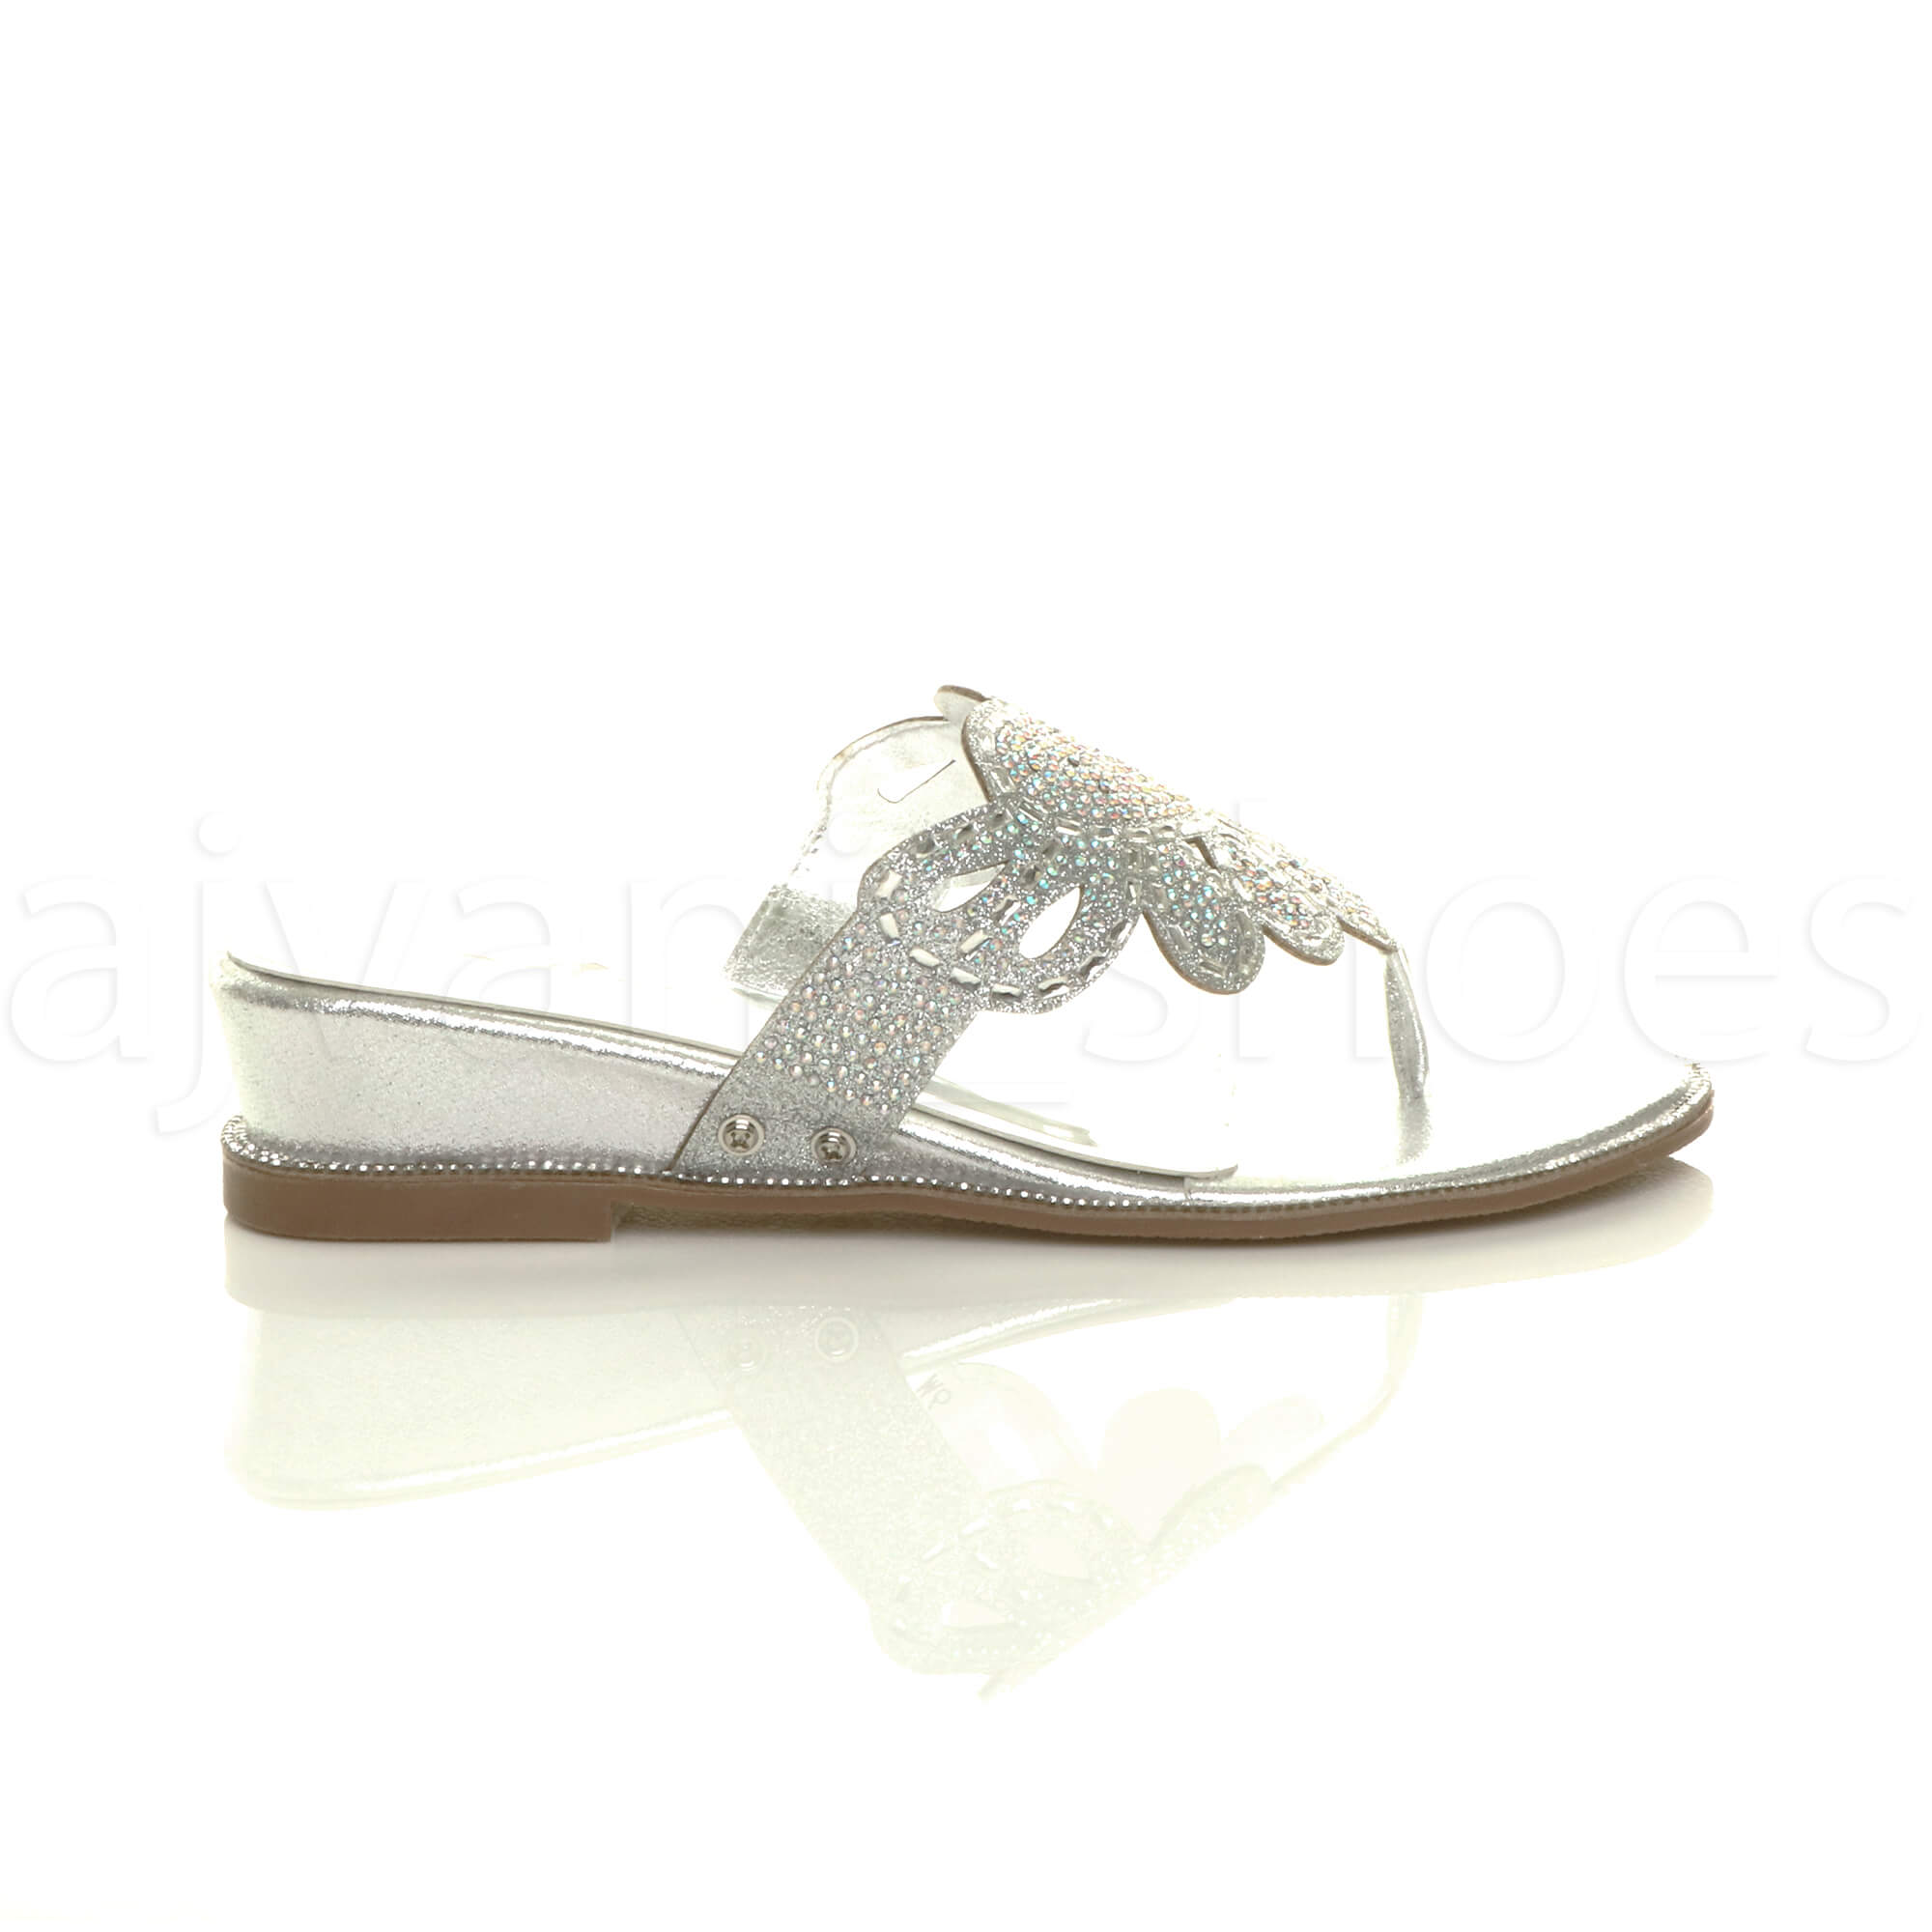 WOMENS-LADIES-LOW-MID-WEDGE-HEEL-DIAMANTE-EVENING-TOE-POST-SANDALS-MULES-SIZE thumbnail 19